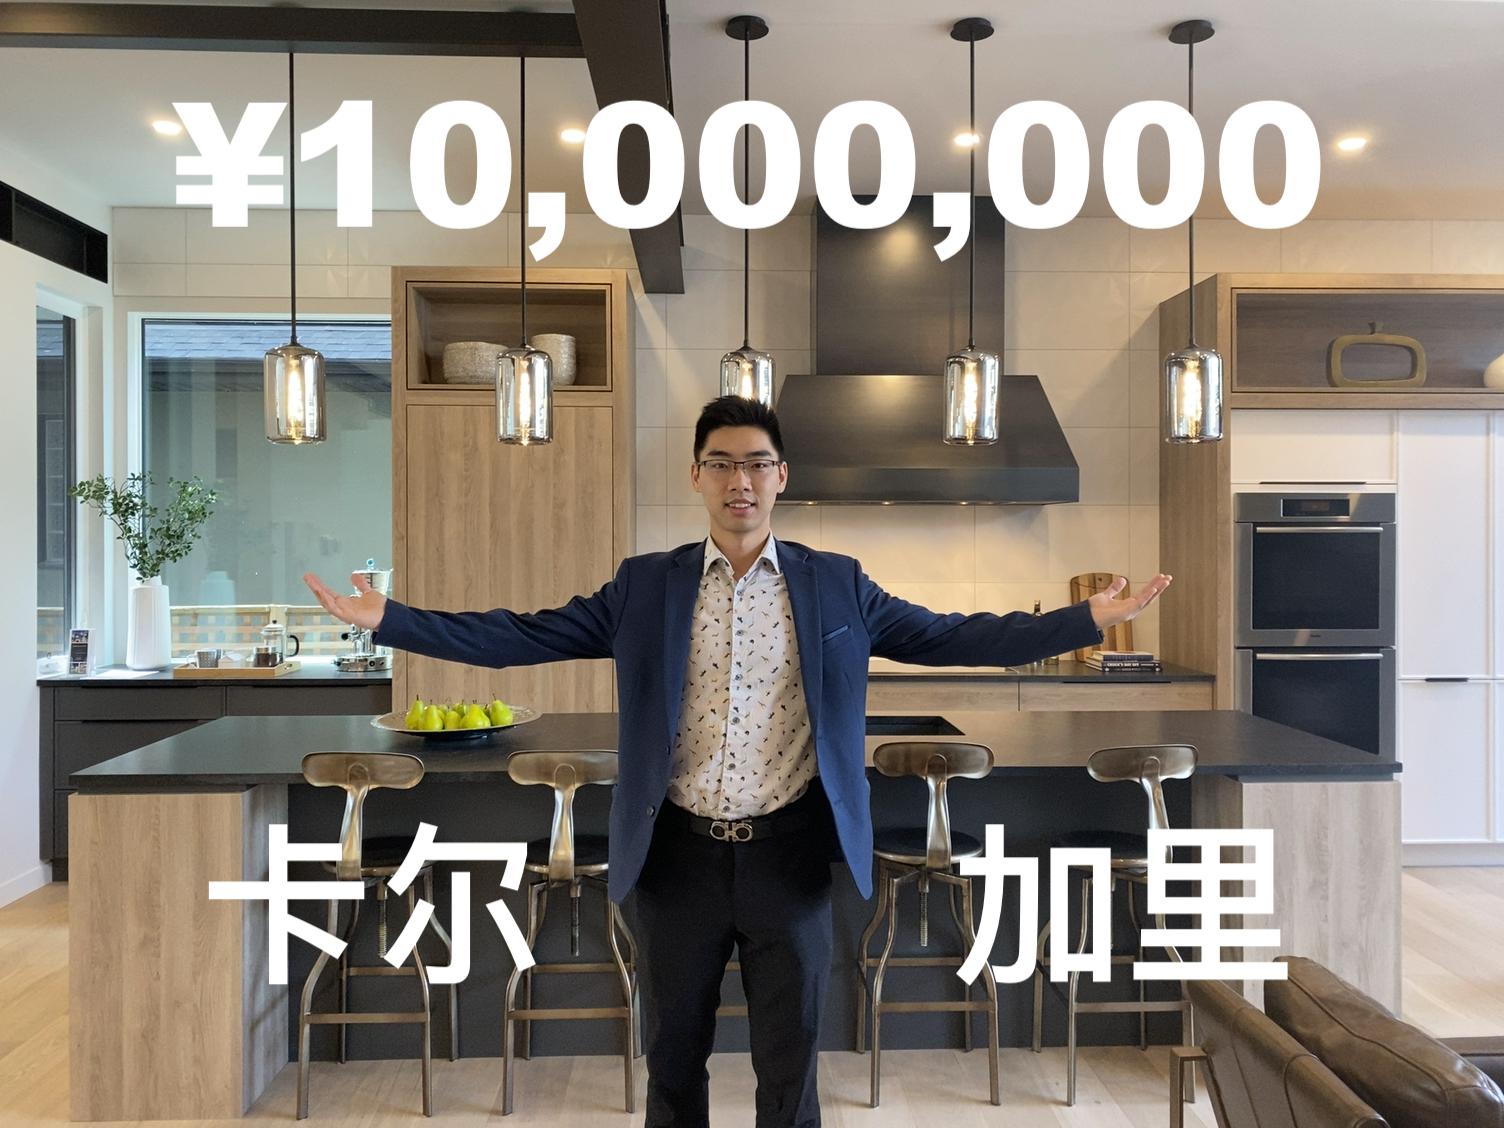 What can 2000k Dollar buy you in Calgary House market? ¥10,000K Luxury Home Tour